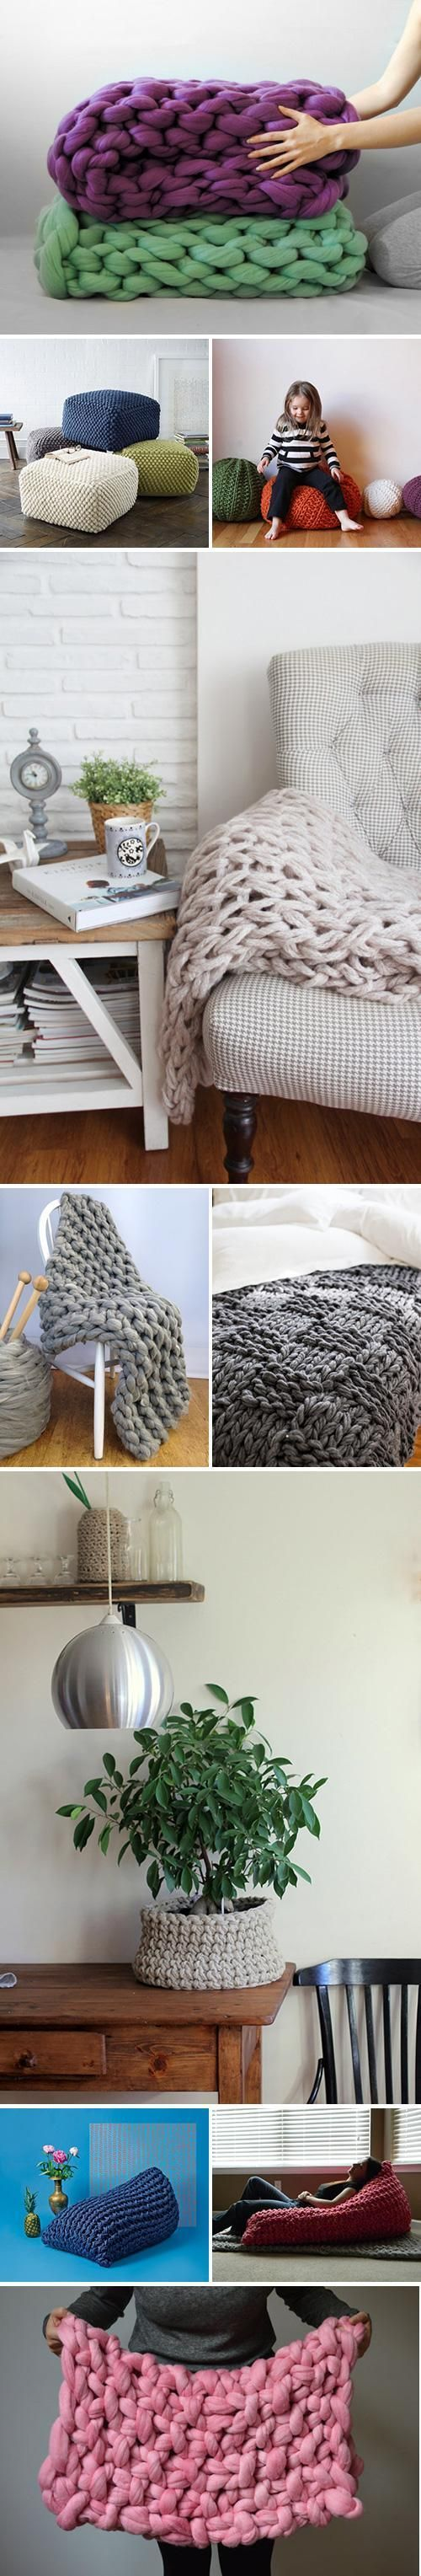 awesome Hot Home Decor Trend: Chunky Knits to Buy or DIY by http://www.best-100-home-decor-pics.club/home-decor-accessories/hot-home-decor-trend-chunky-knits-to-buy-or-diy/